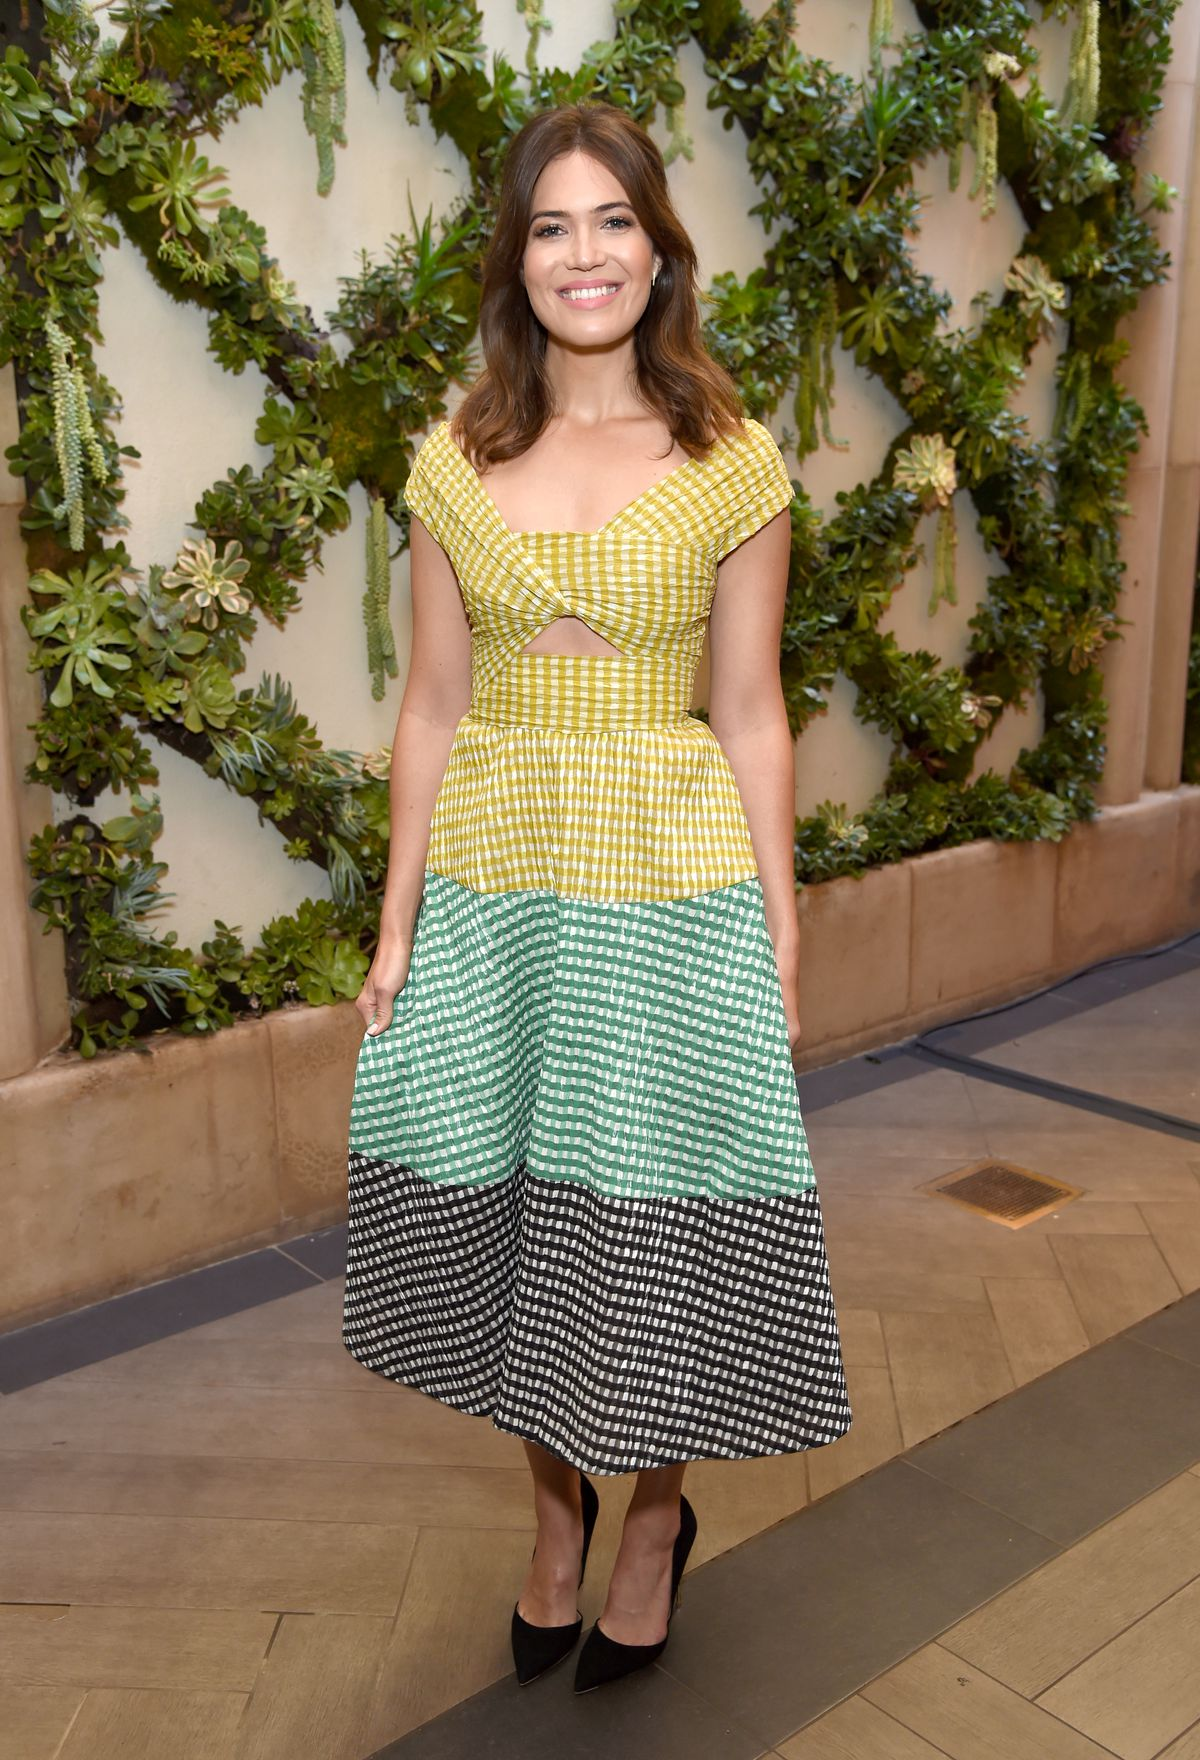 Actress Mandy Moore attends the 17th annual AFI Awards at Four Seasons Los Angeles at Beverly Hills on January 6, 2017 in Los Angeles, California.